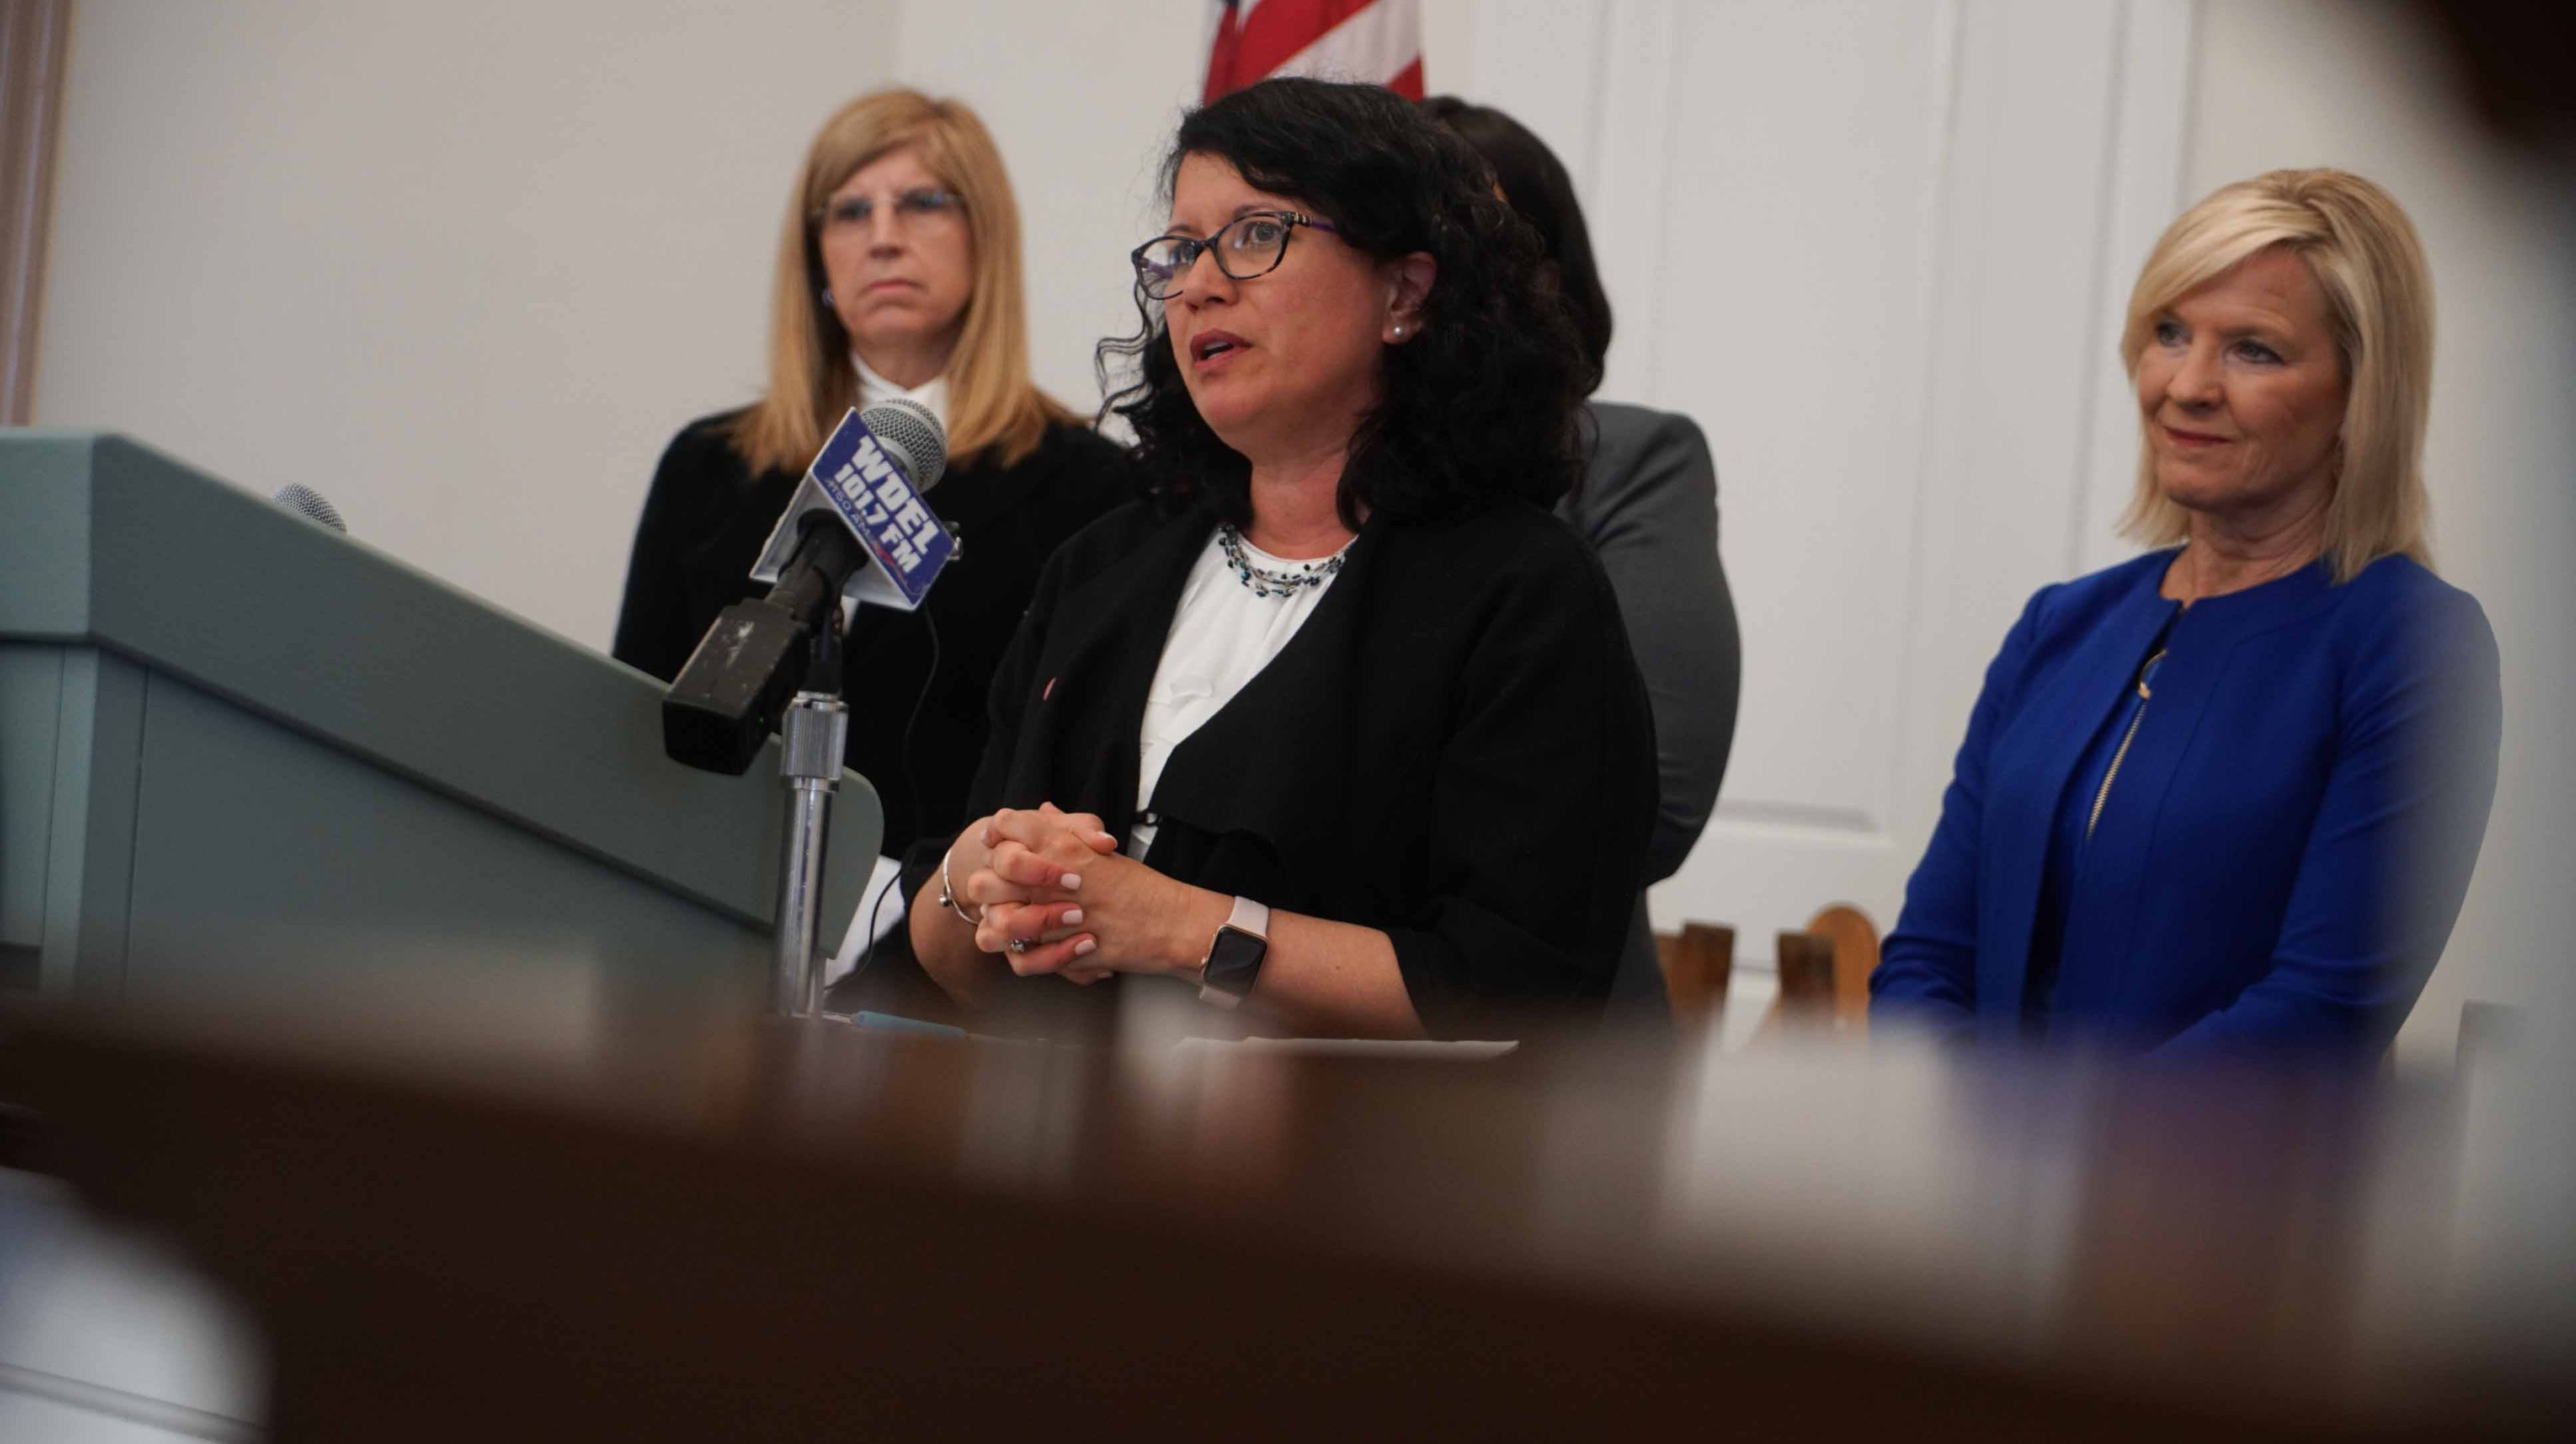 Elizabeth Romero, director at Delaware Division of Substance Abuse and Mental Health, speaks at a press conference where the Pew Charitable Trusts gave a recommendation to the state's Behavioral Health Consortium.